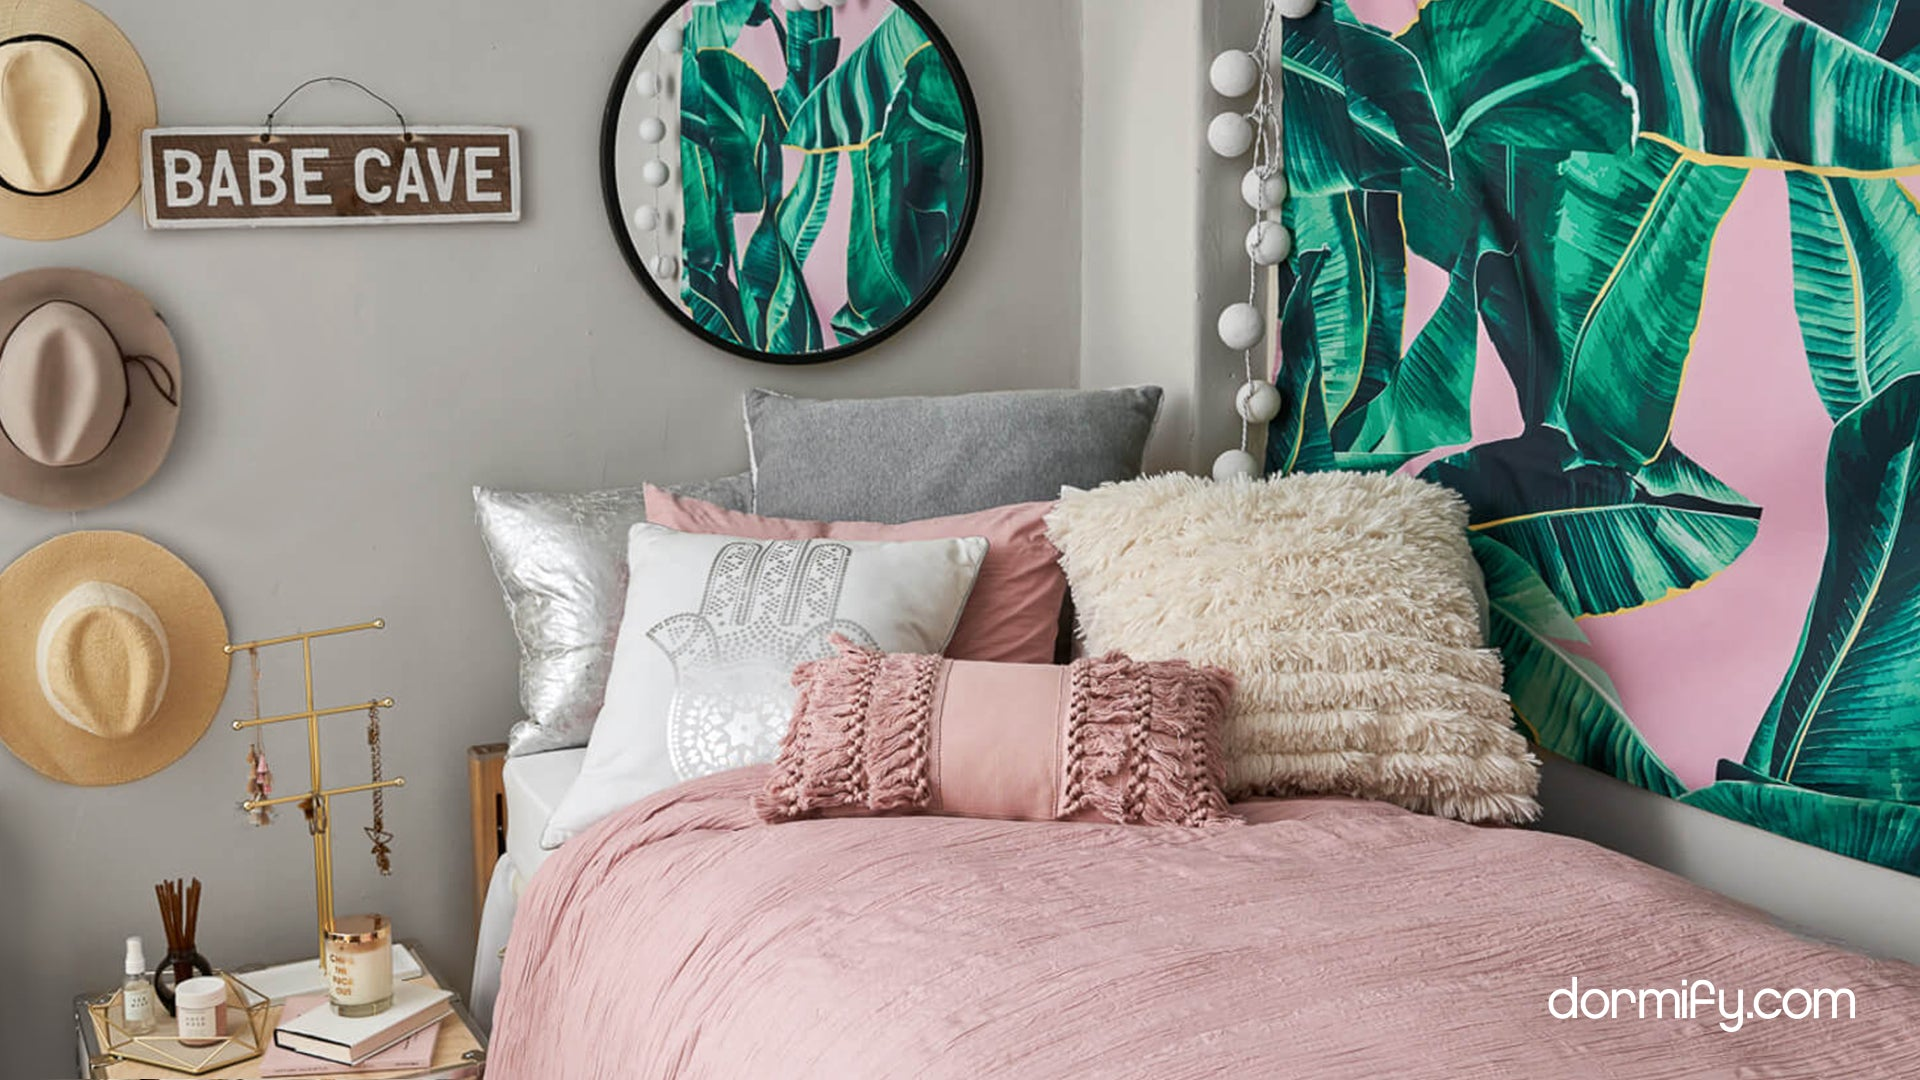 Beverly Hills Bedroom set by Dormify that includes a pink comforter, decorative pillows, and green leaf wall decor.